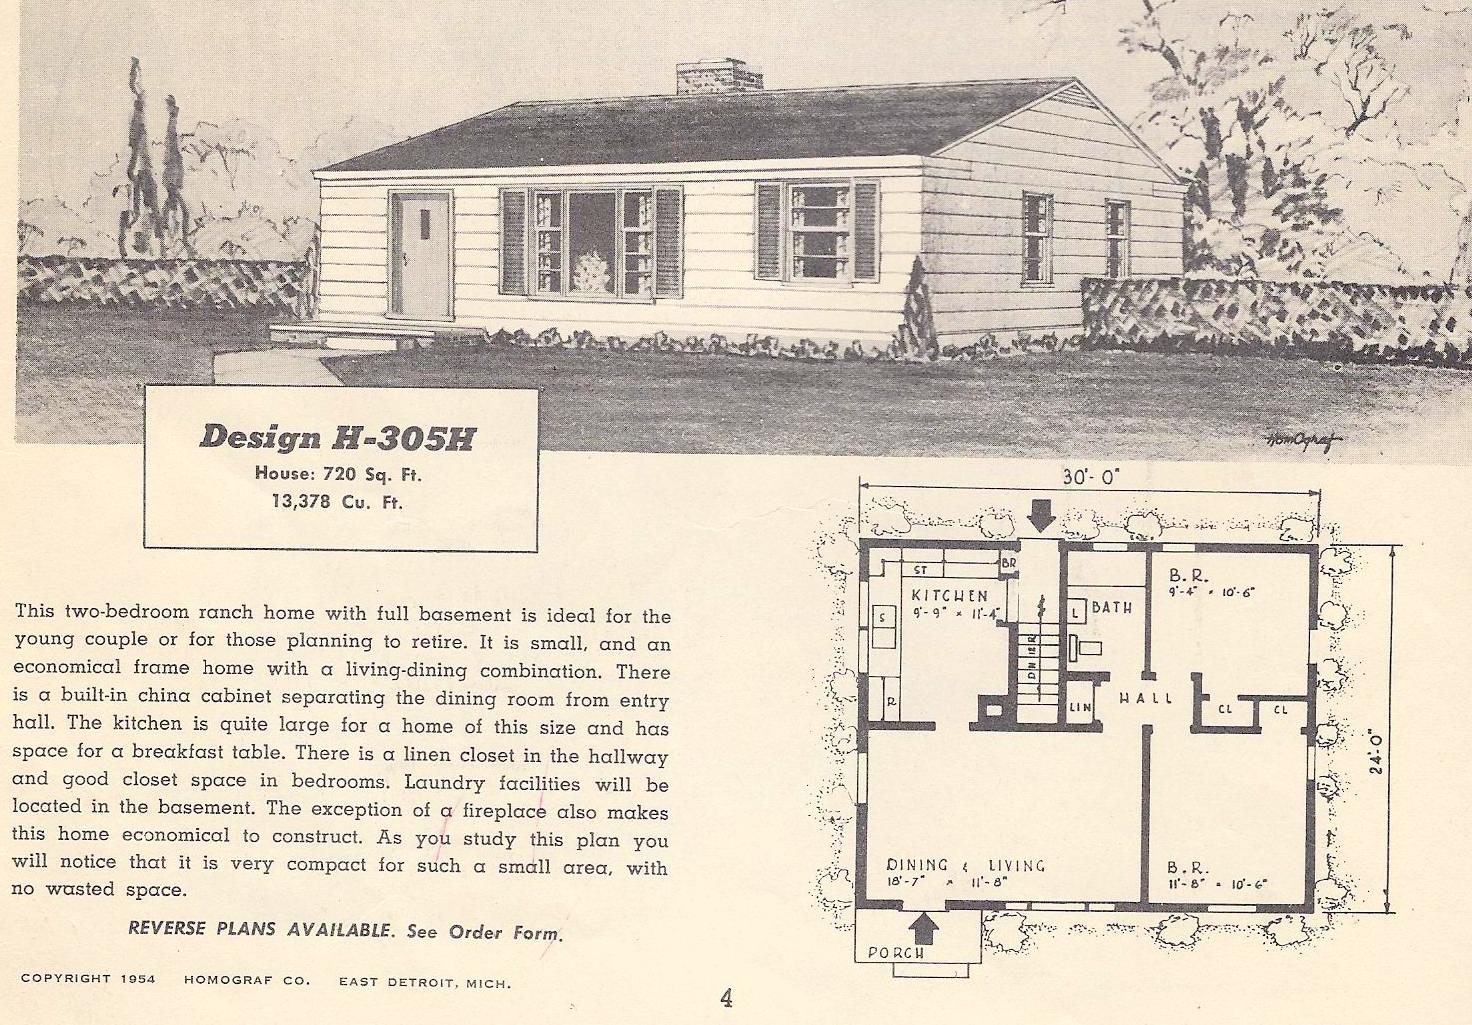 Vintage house plans 305h antique alter ego for Vintage home plans